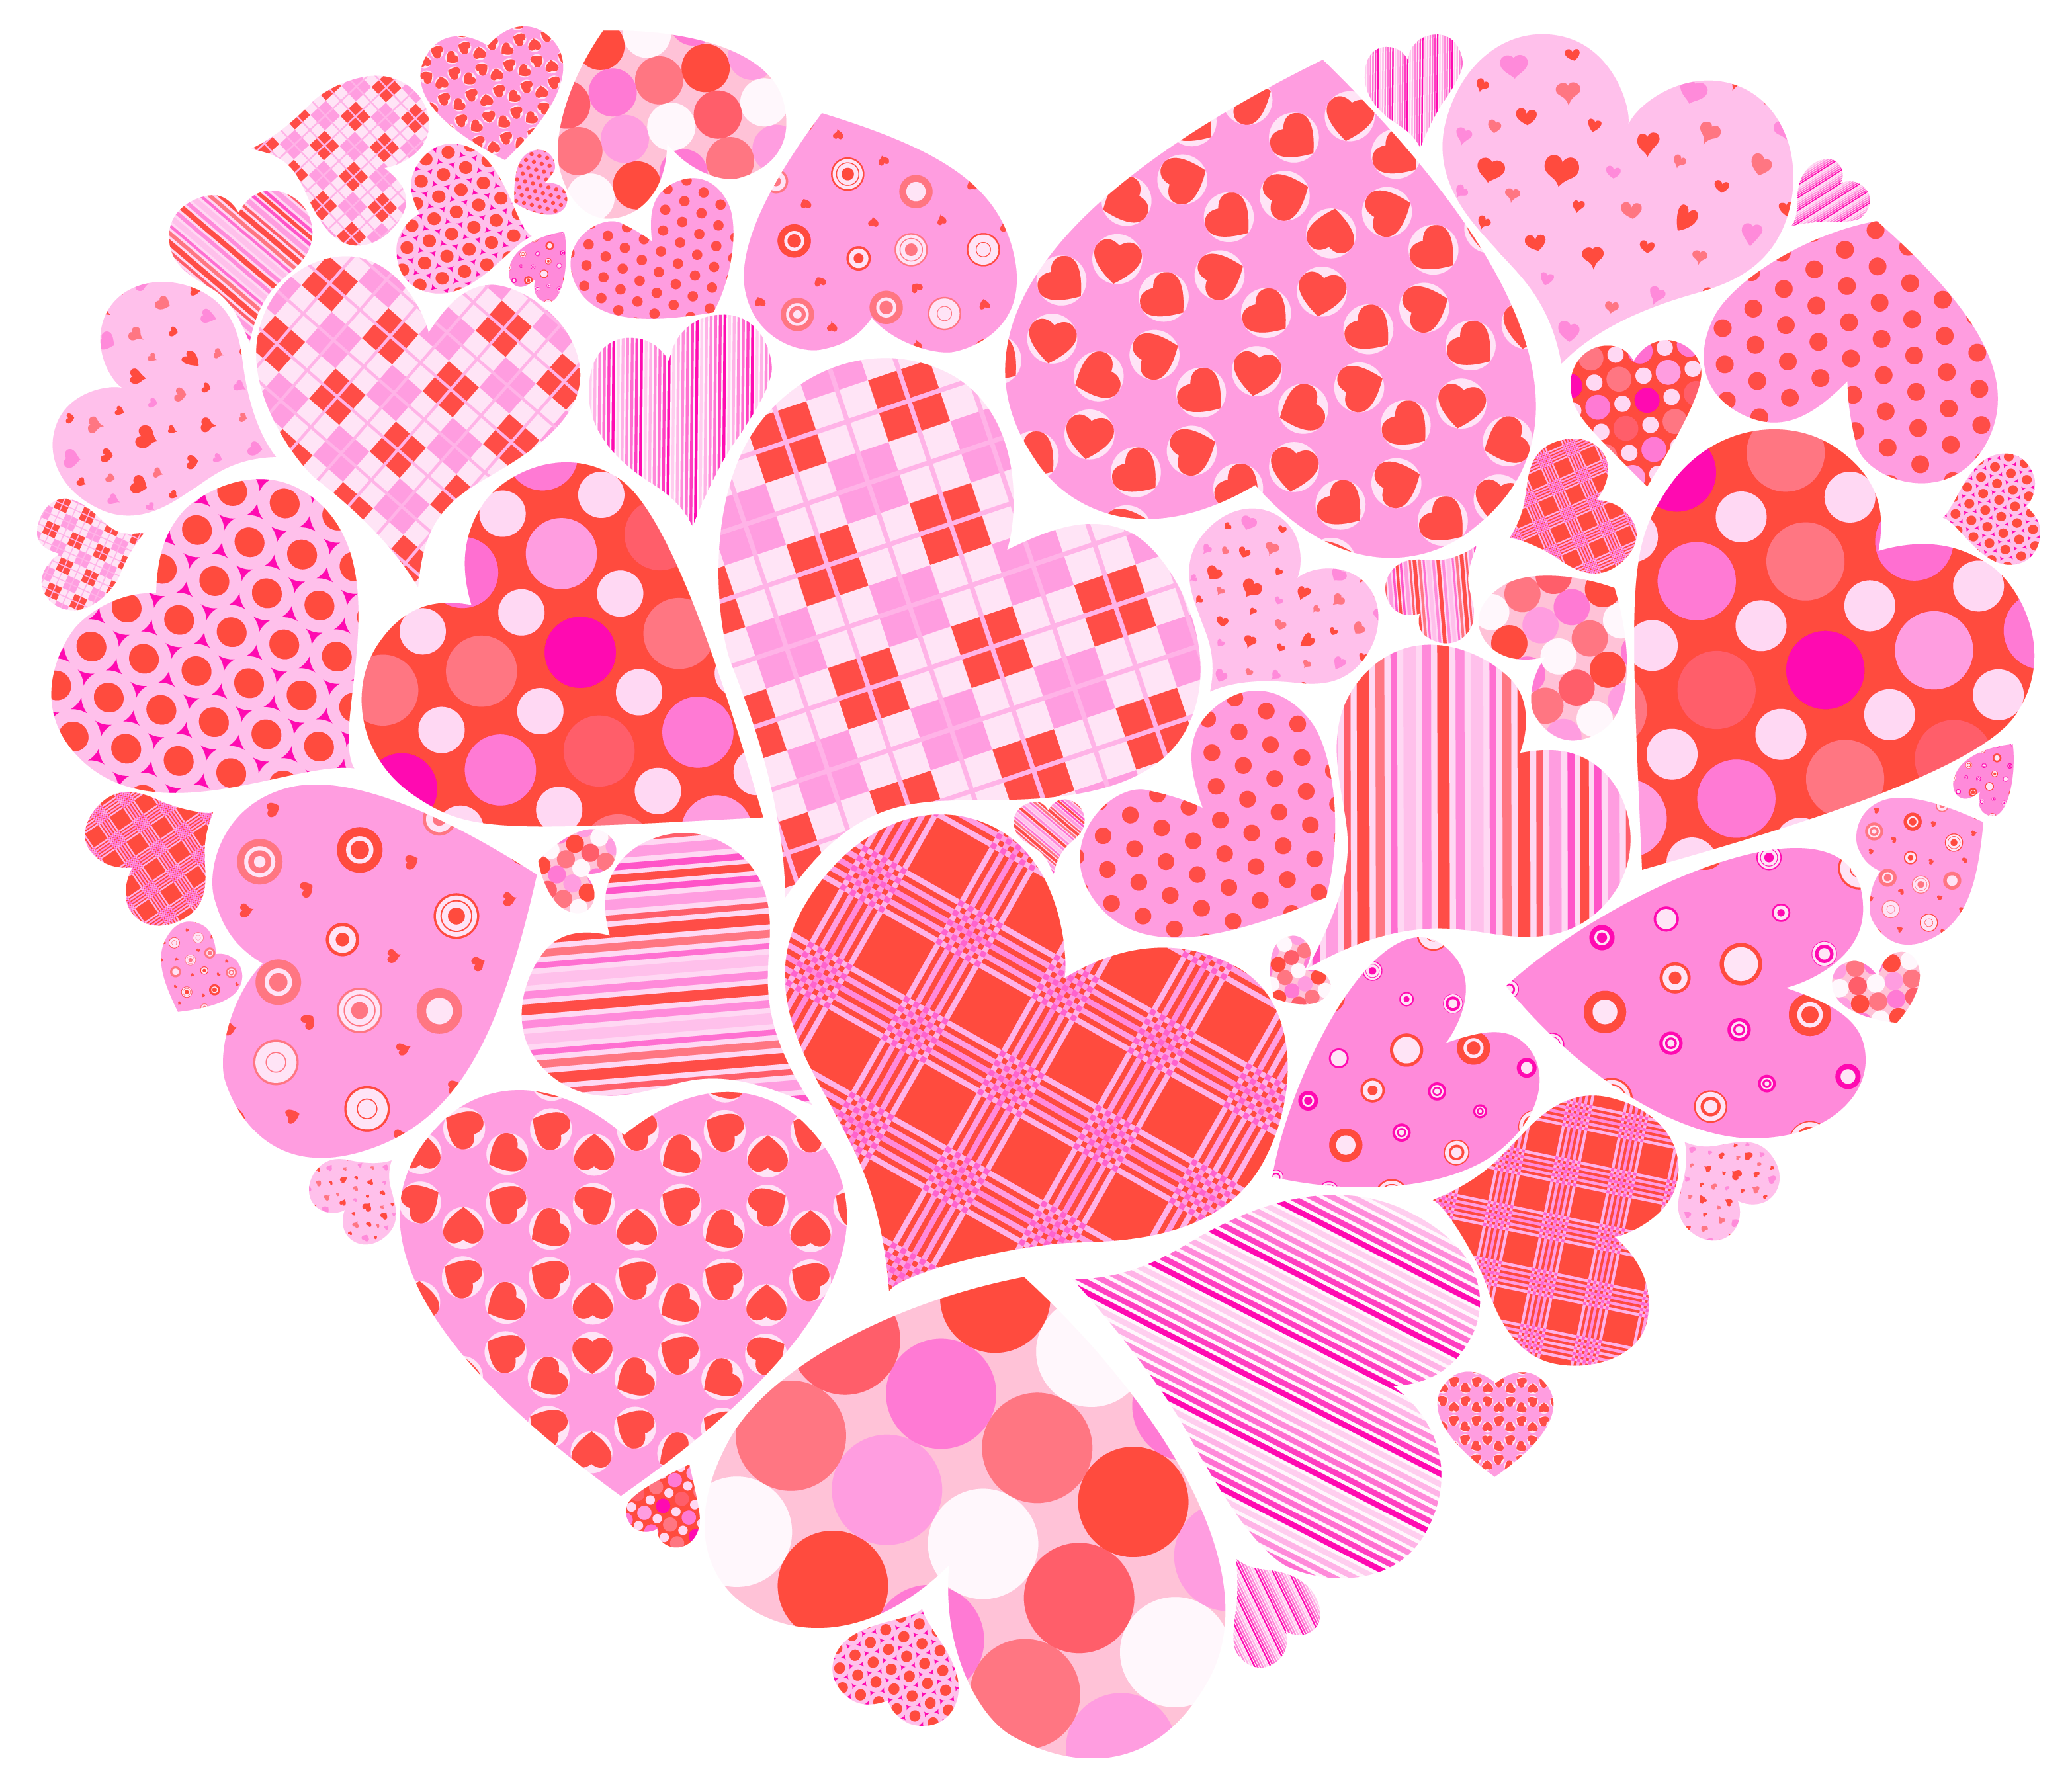 Heart of hearts clipart. Valentines day clip art png clip art royalty free library